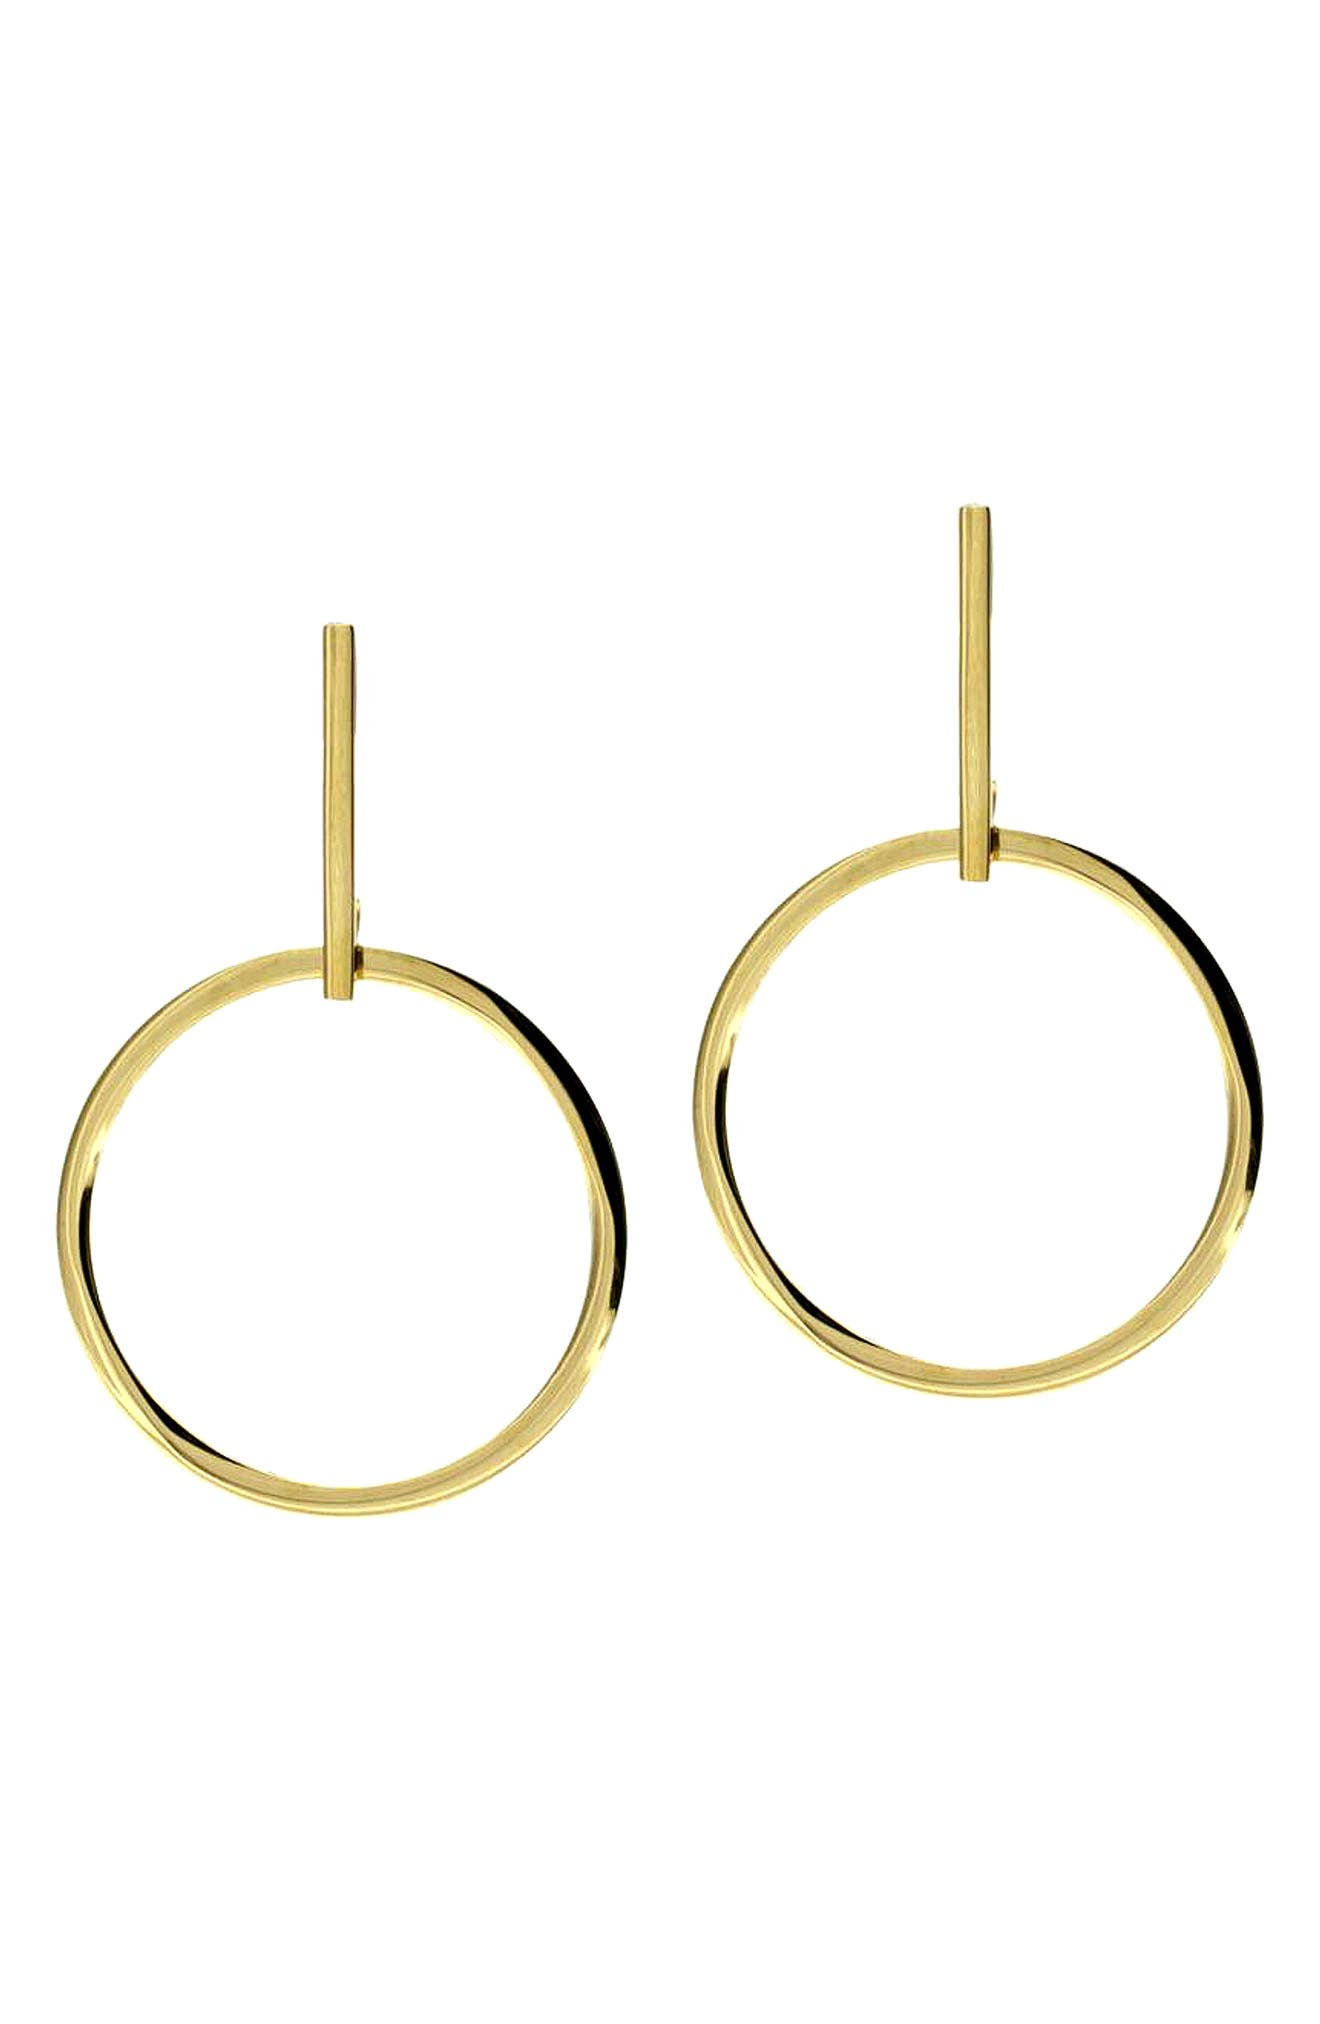 Joplin Hoop Earrings,                             Main thumbnail 1, color,                             GOLD